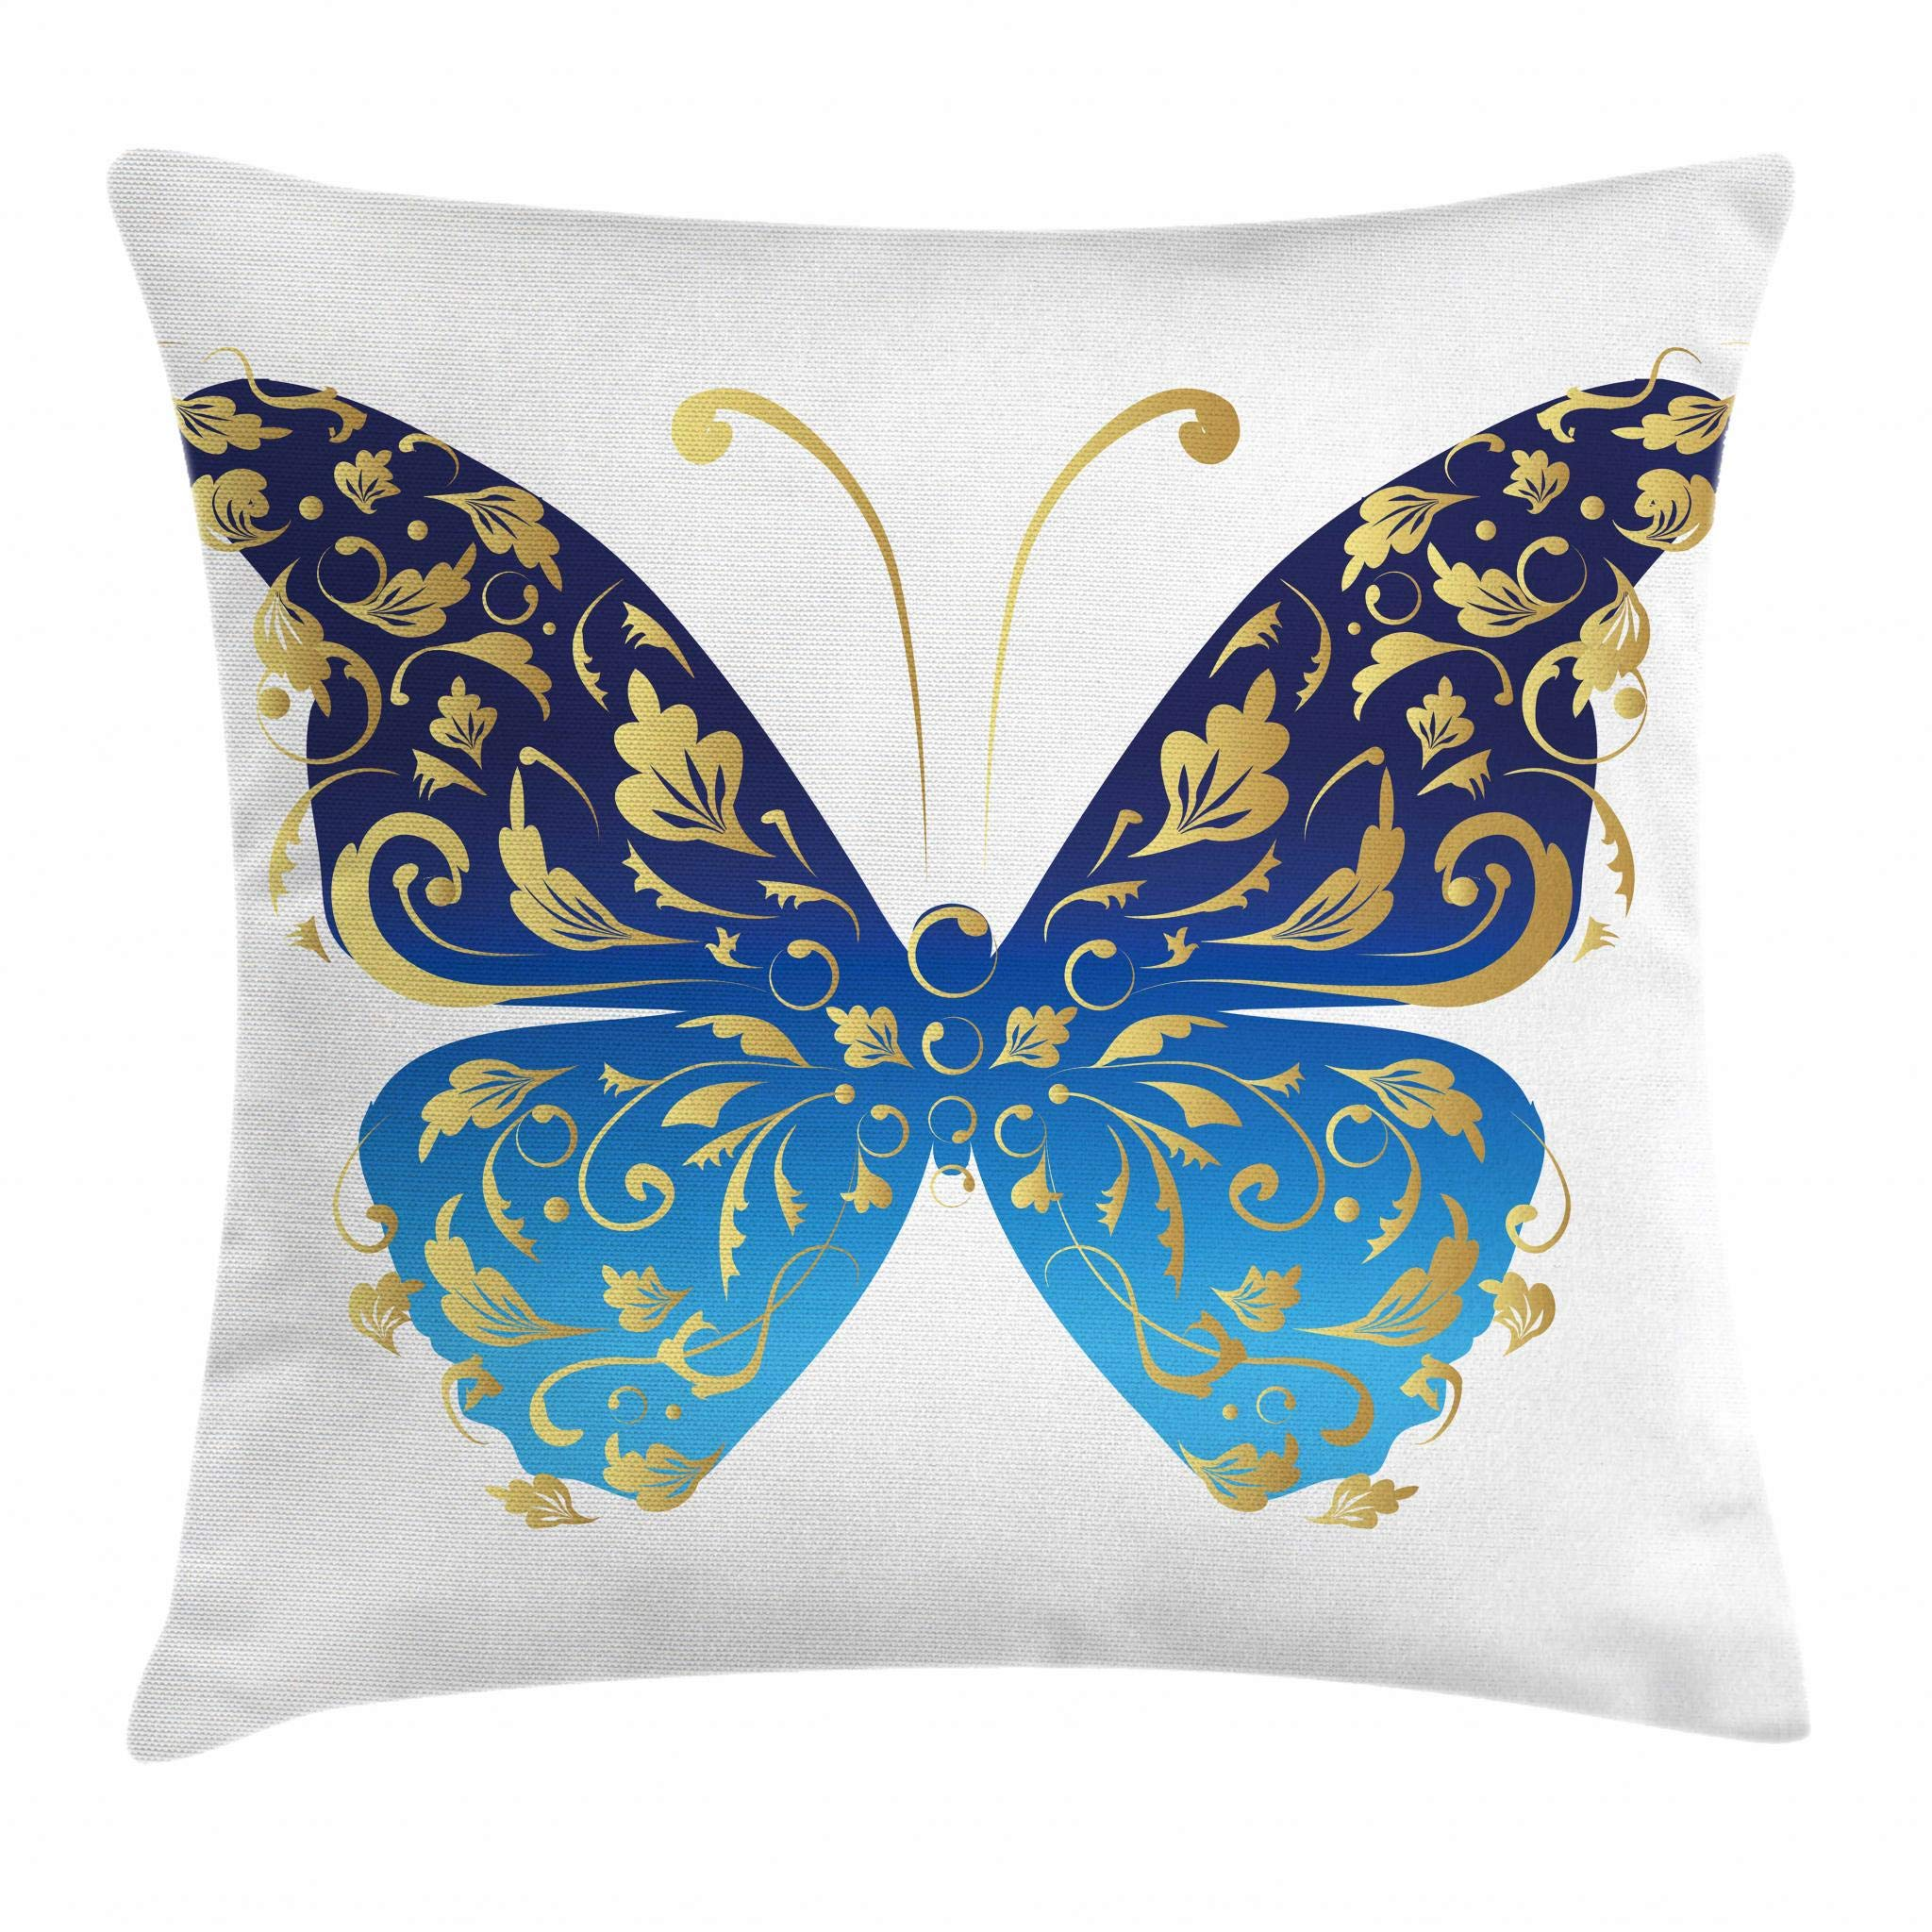 Lunarable Animal Throw Pillow Cushion Cover, Blue Butterfly with Wavy Leaves Graphic, Decorative Square Accent Pillow Case, 26'' X 26'', Pale Blue Dark Blue Earth Yellow